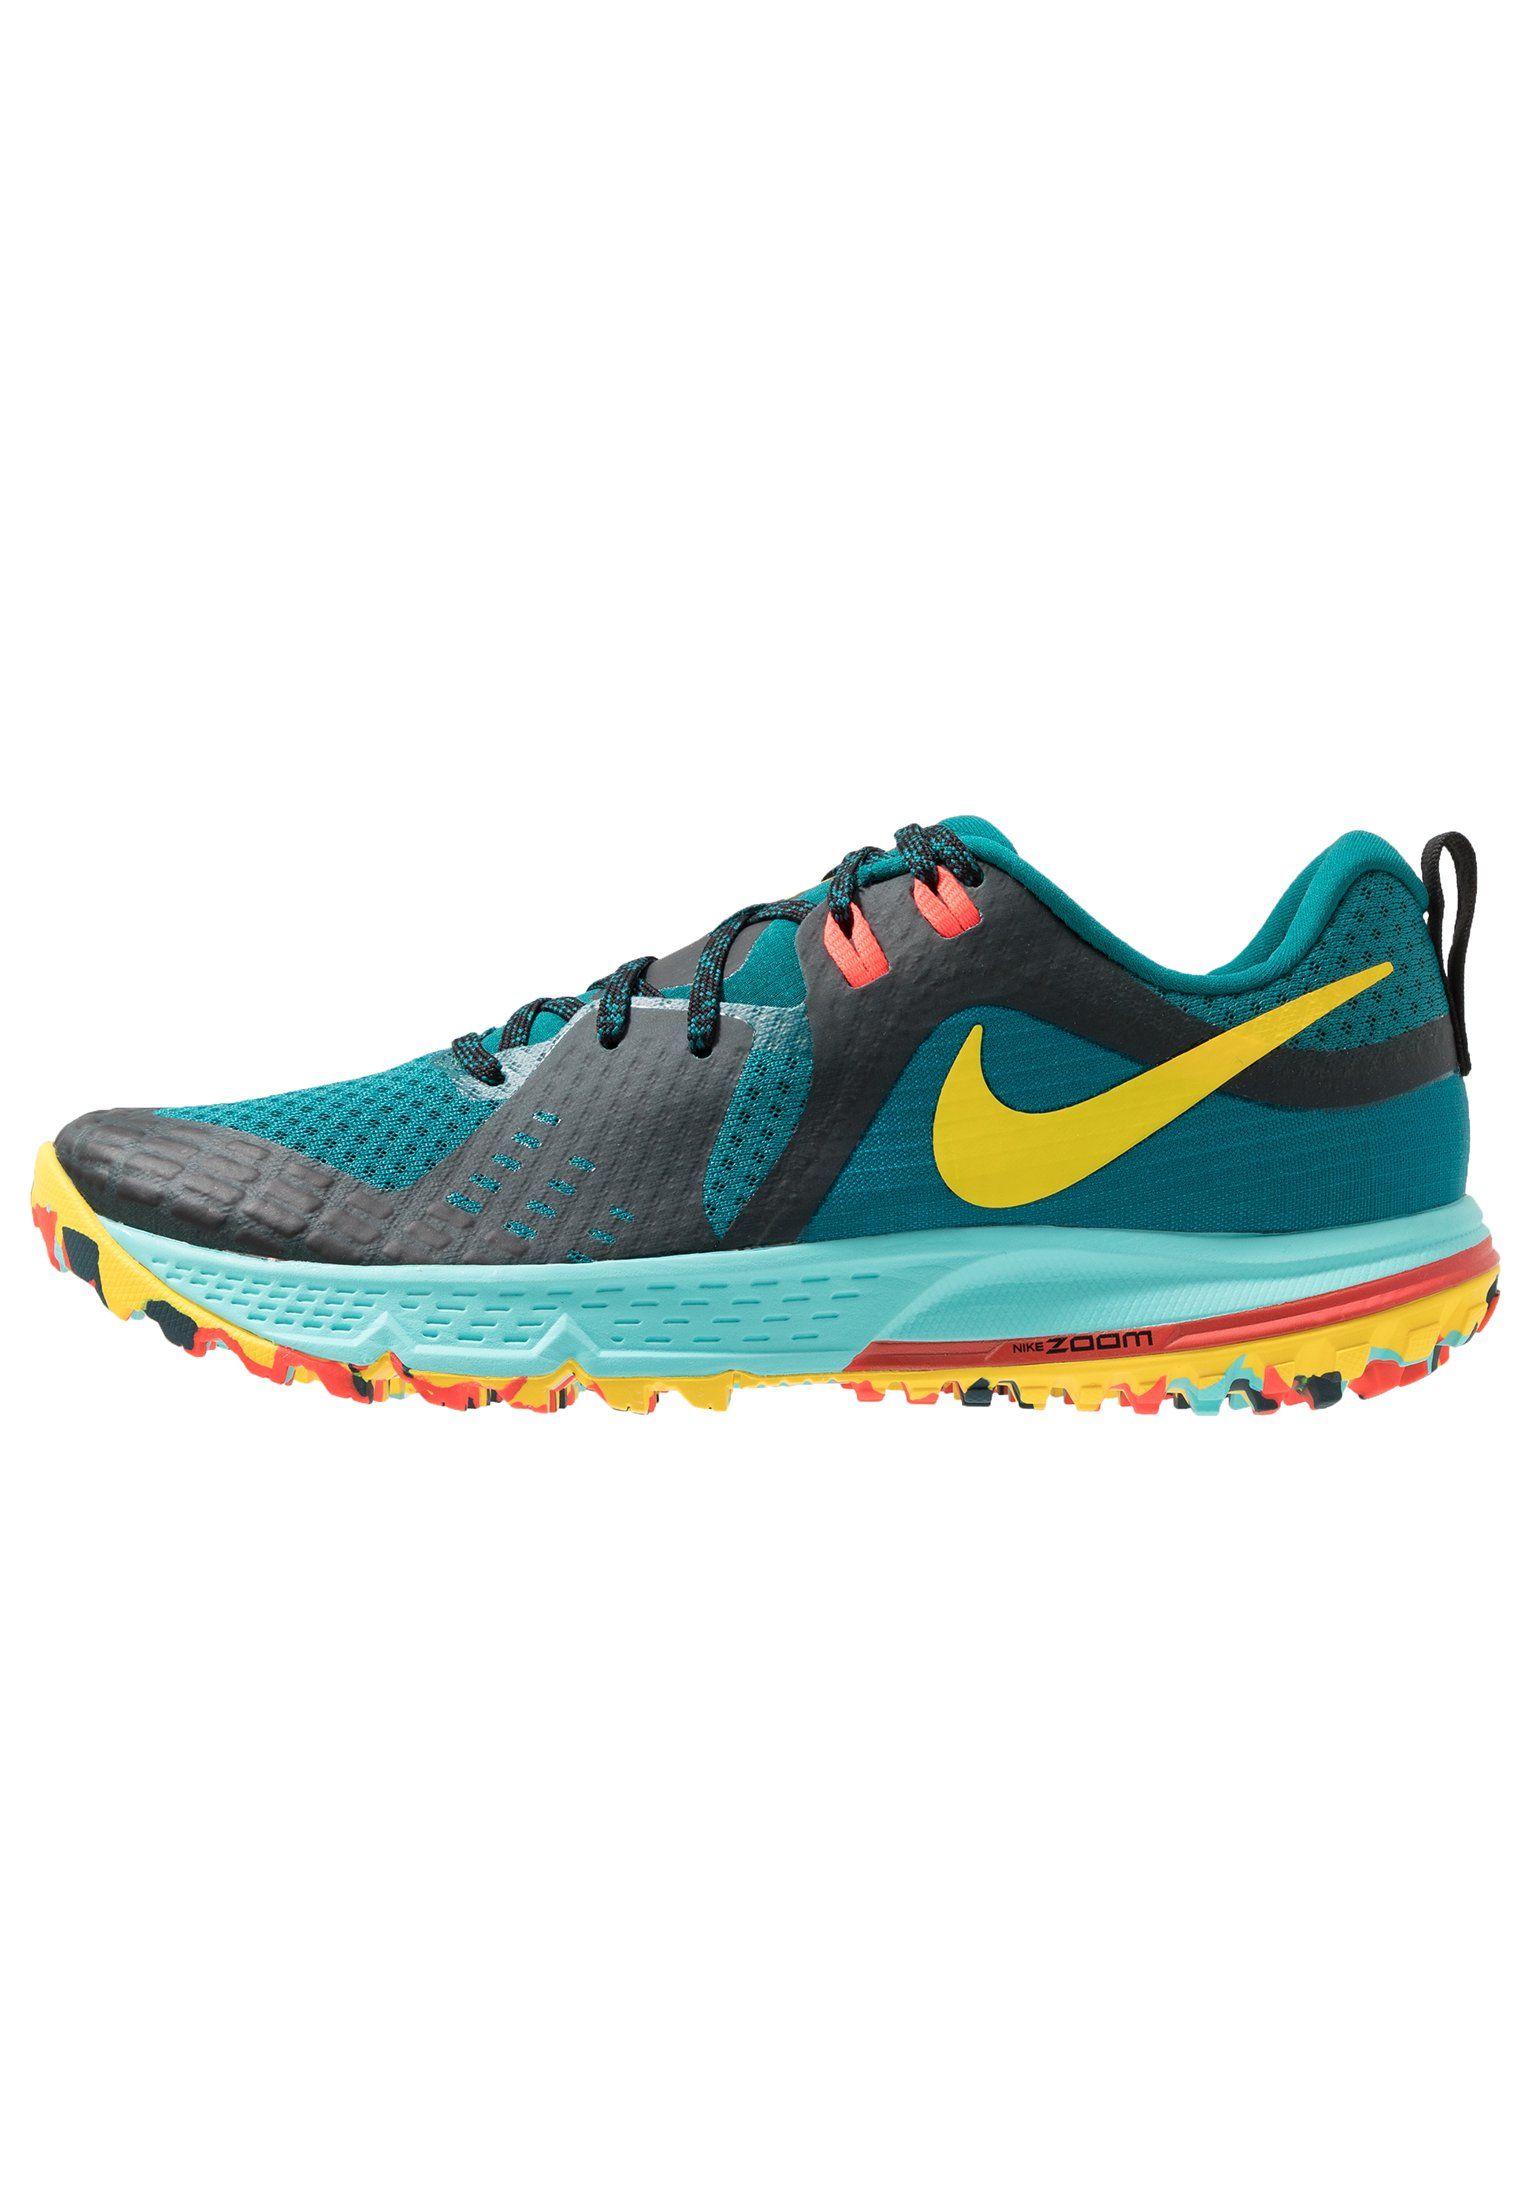 AIR ZOOM WILDHORSE 5 Scarpe da trail running geode tealchrome yellowblackaurora greenbright crimson